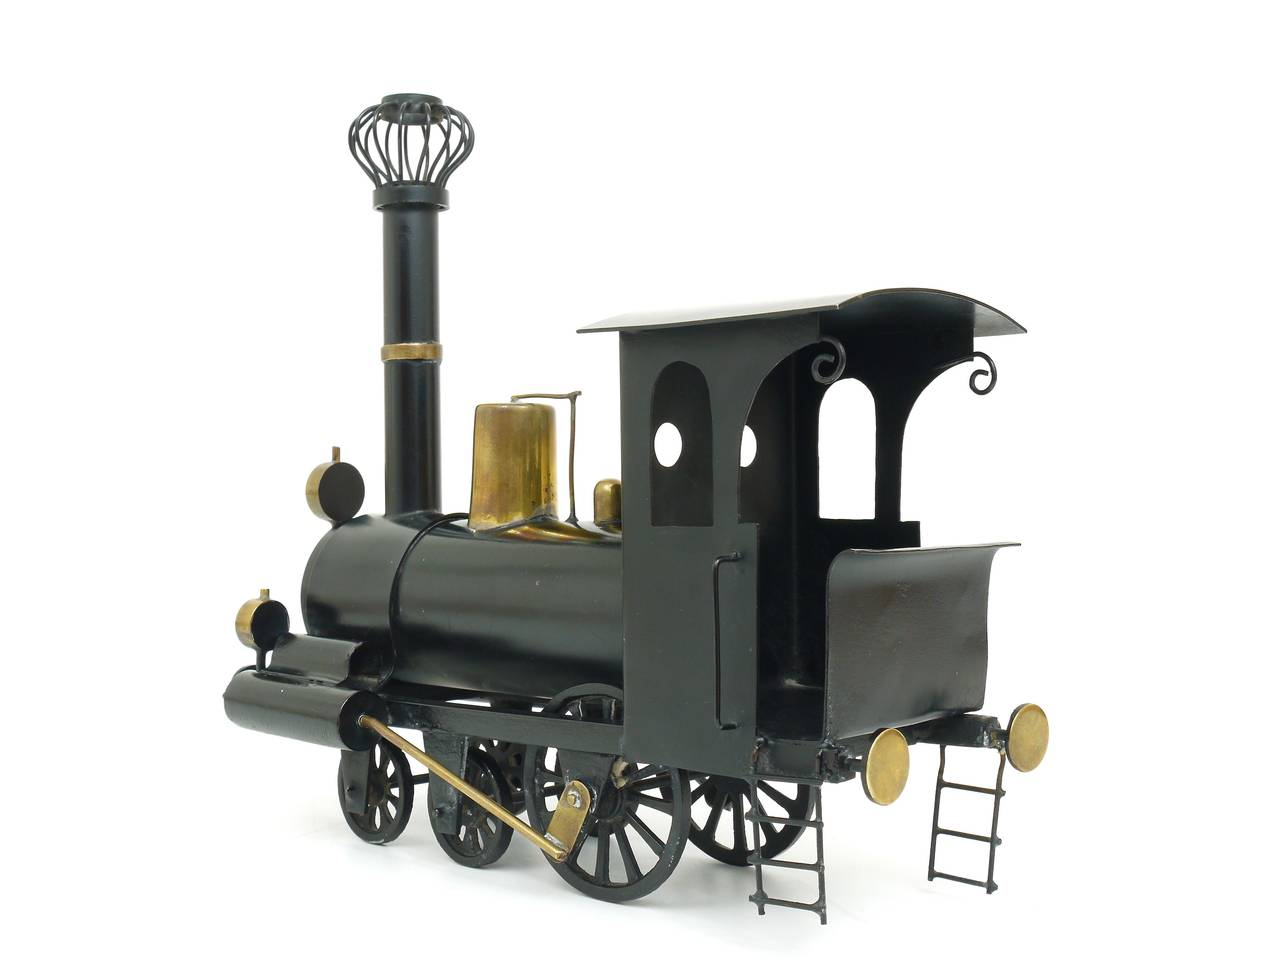 A rare model of a locomotive, handmade of metal and brass. Executed by Werkstatt Hagenauer in the 1920s. Fully marked on its bottom. In excellent condition, nice patina.